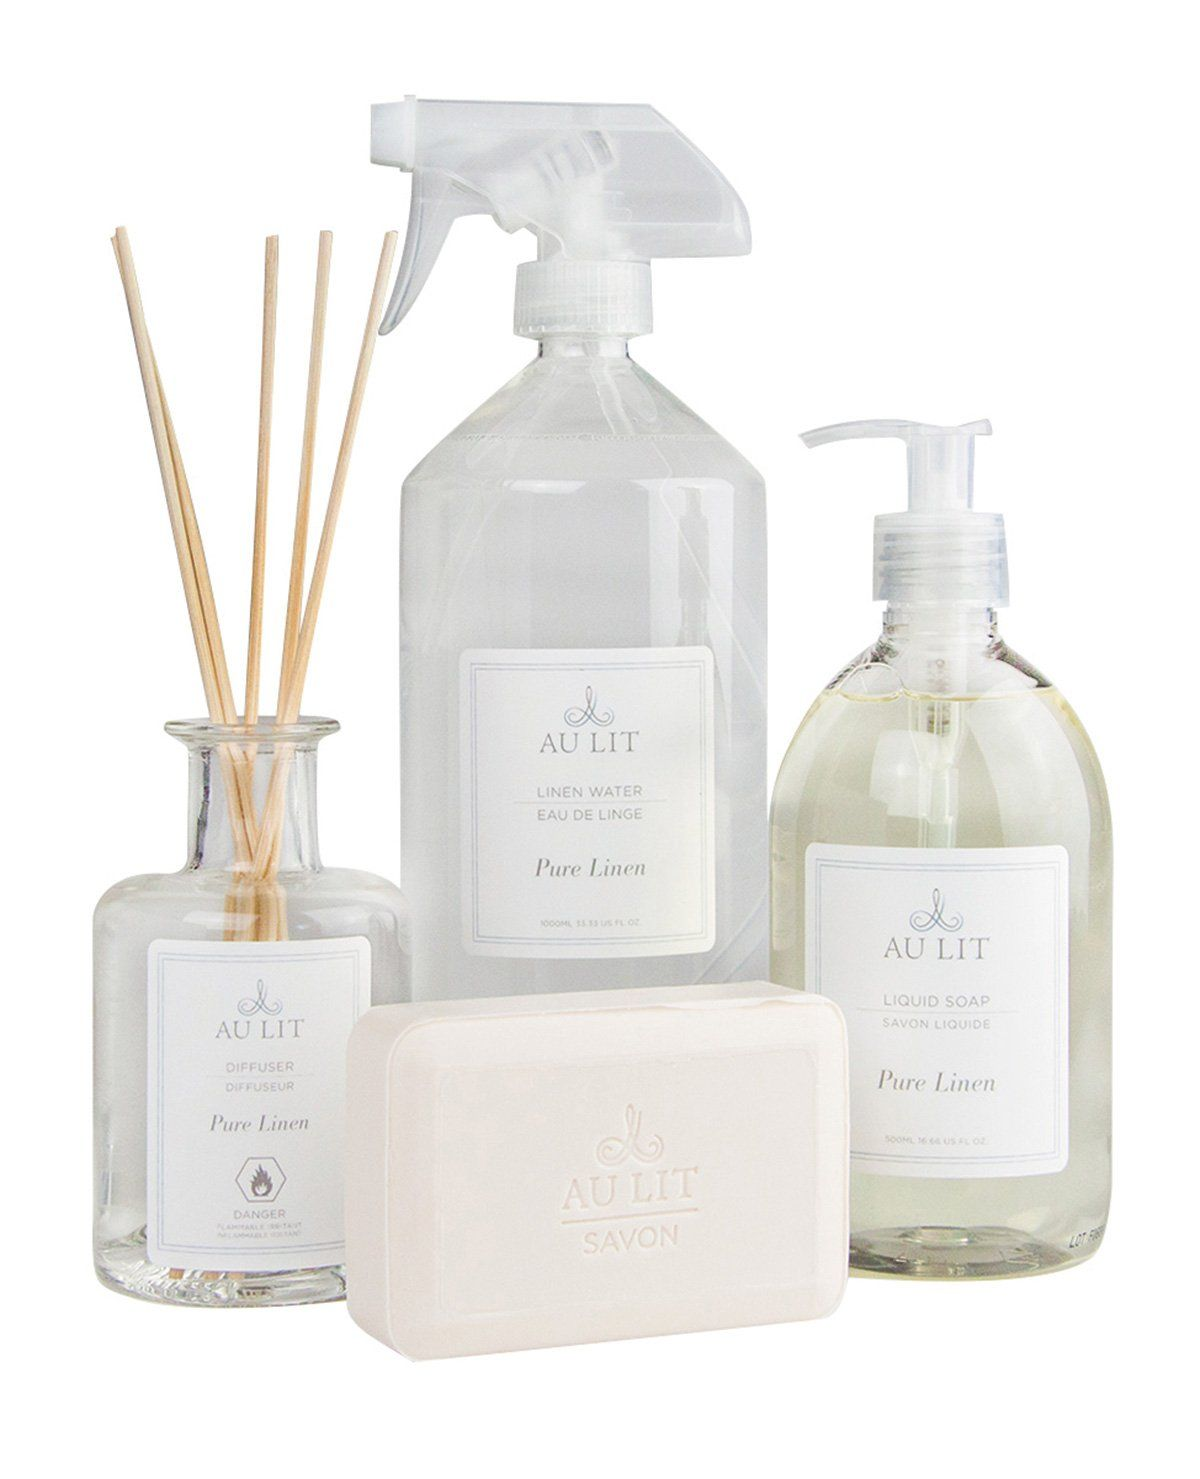 Pure%20Linen%20Scented%20Bath%20Set%20with%20Linen%20Water